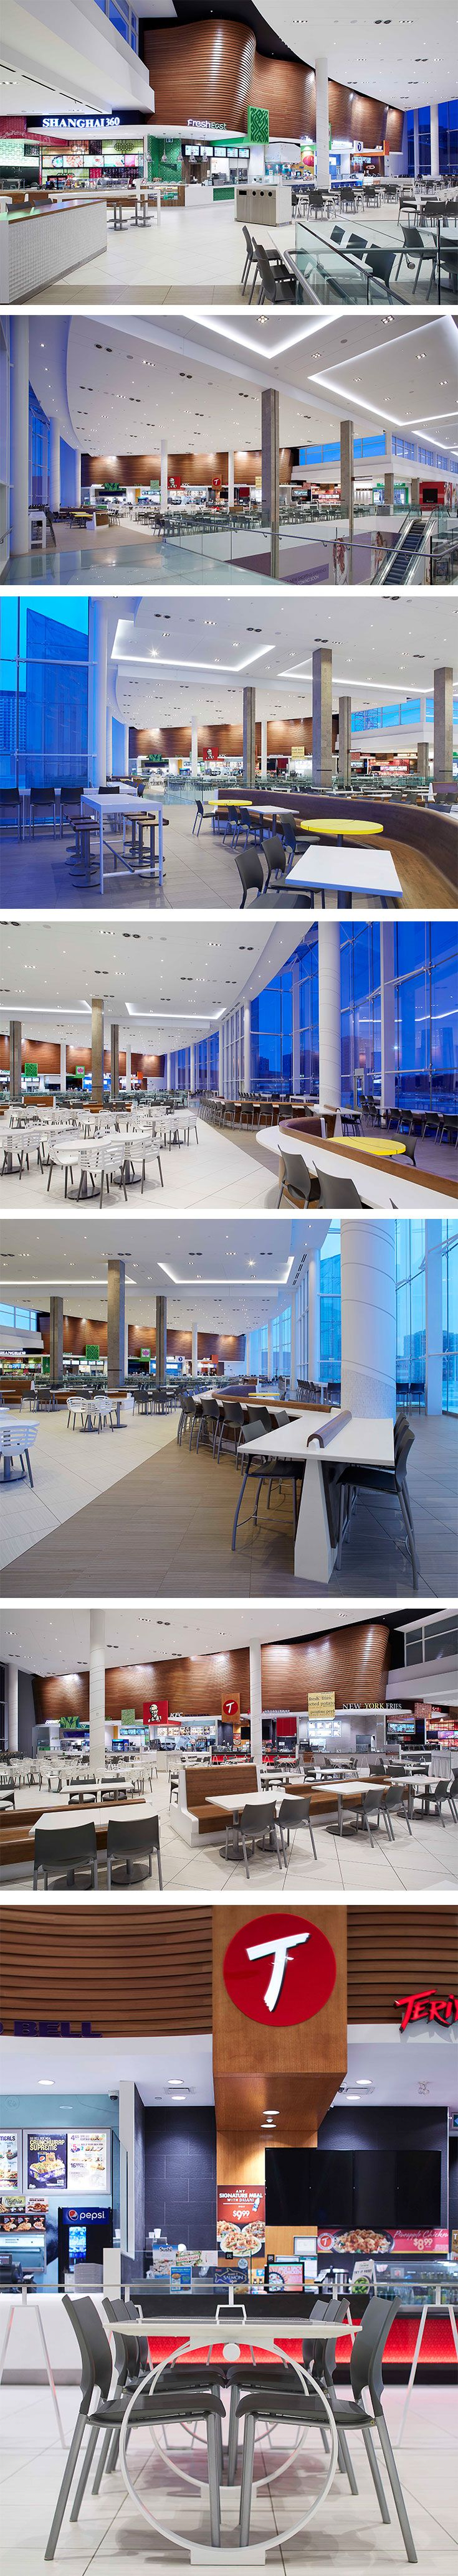 Erin Mills Town Centre Food Court in Mississauga, ON - designed by GH+A (in collaboration with MMC Architects)